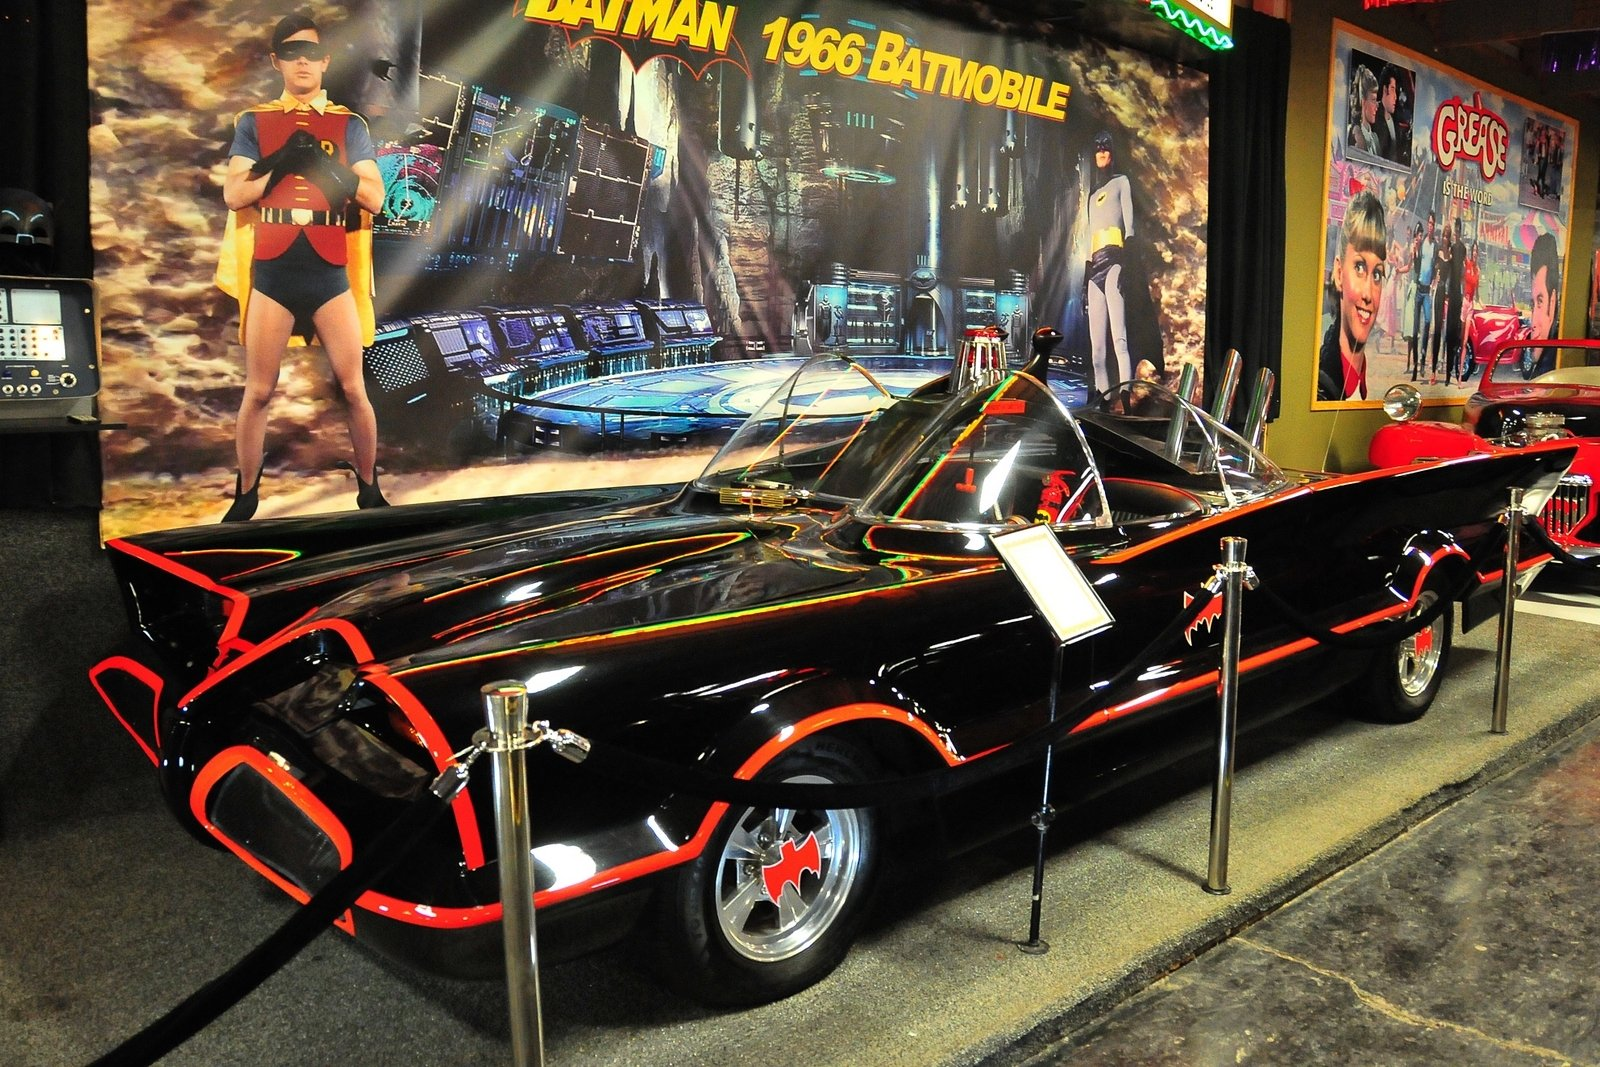 1966 Batmobile Adam West